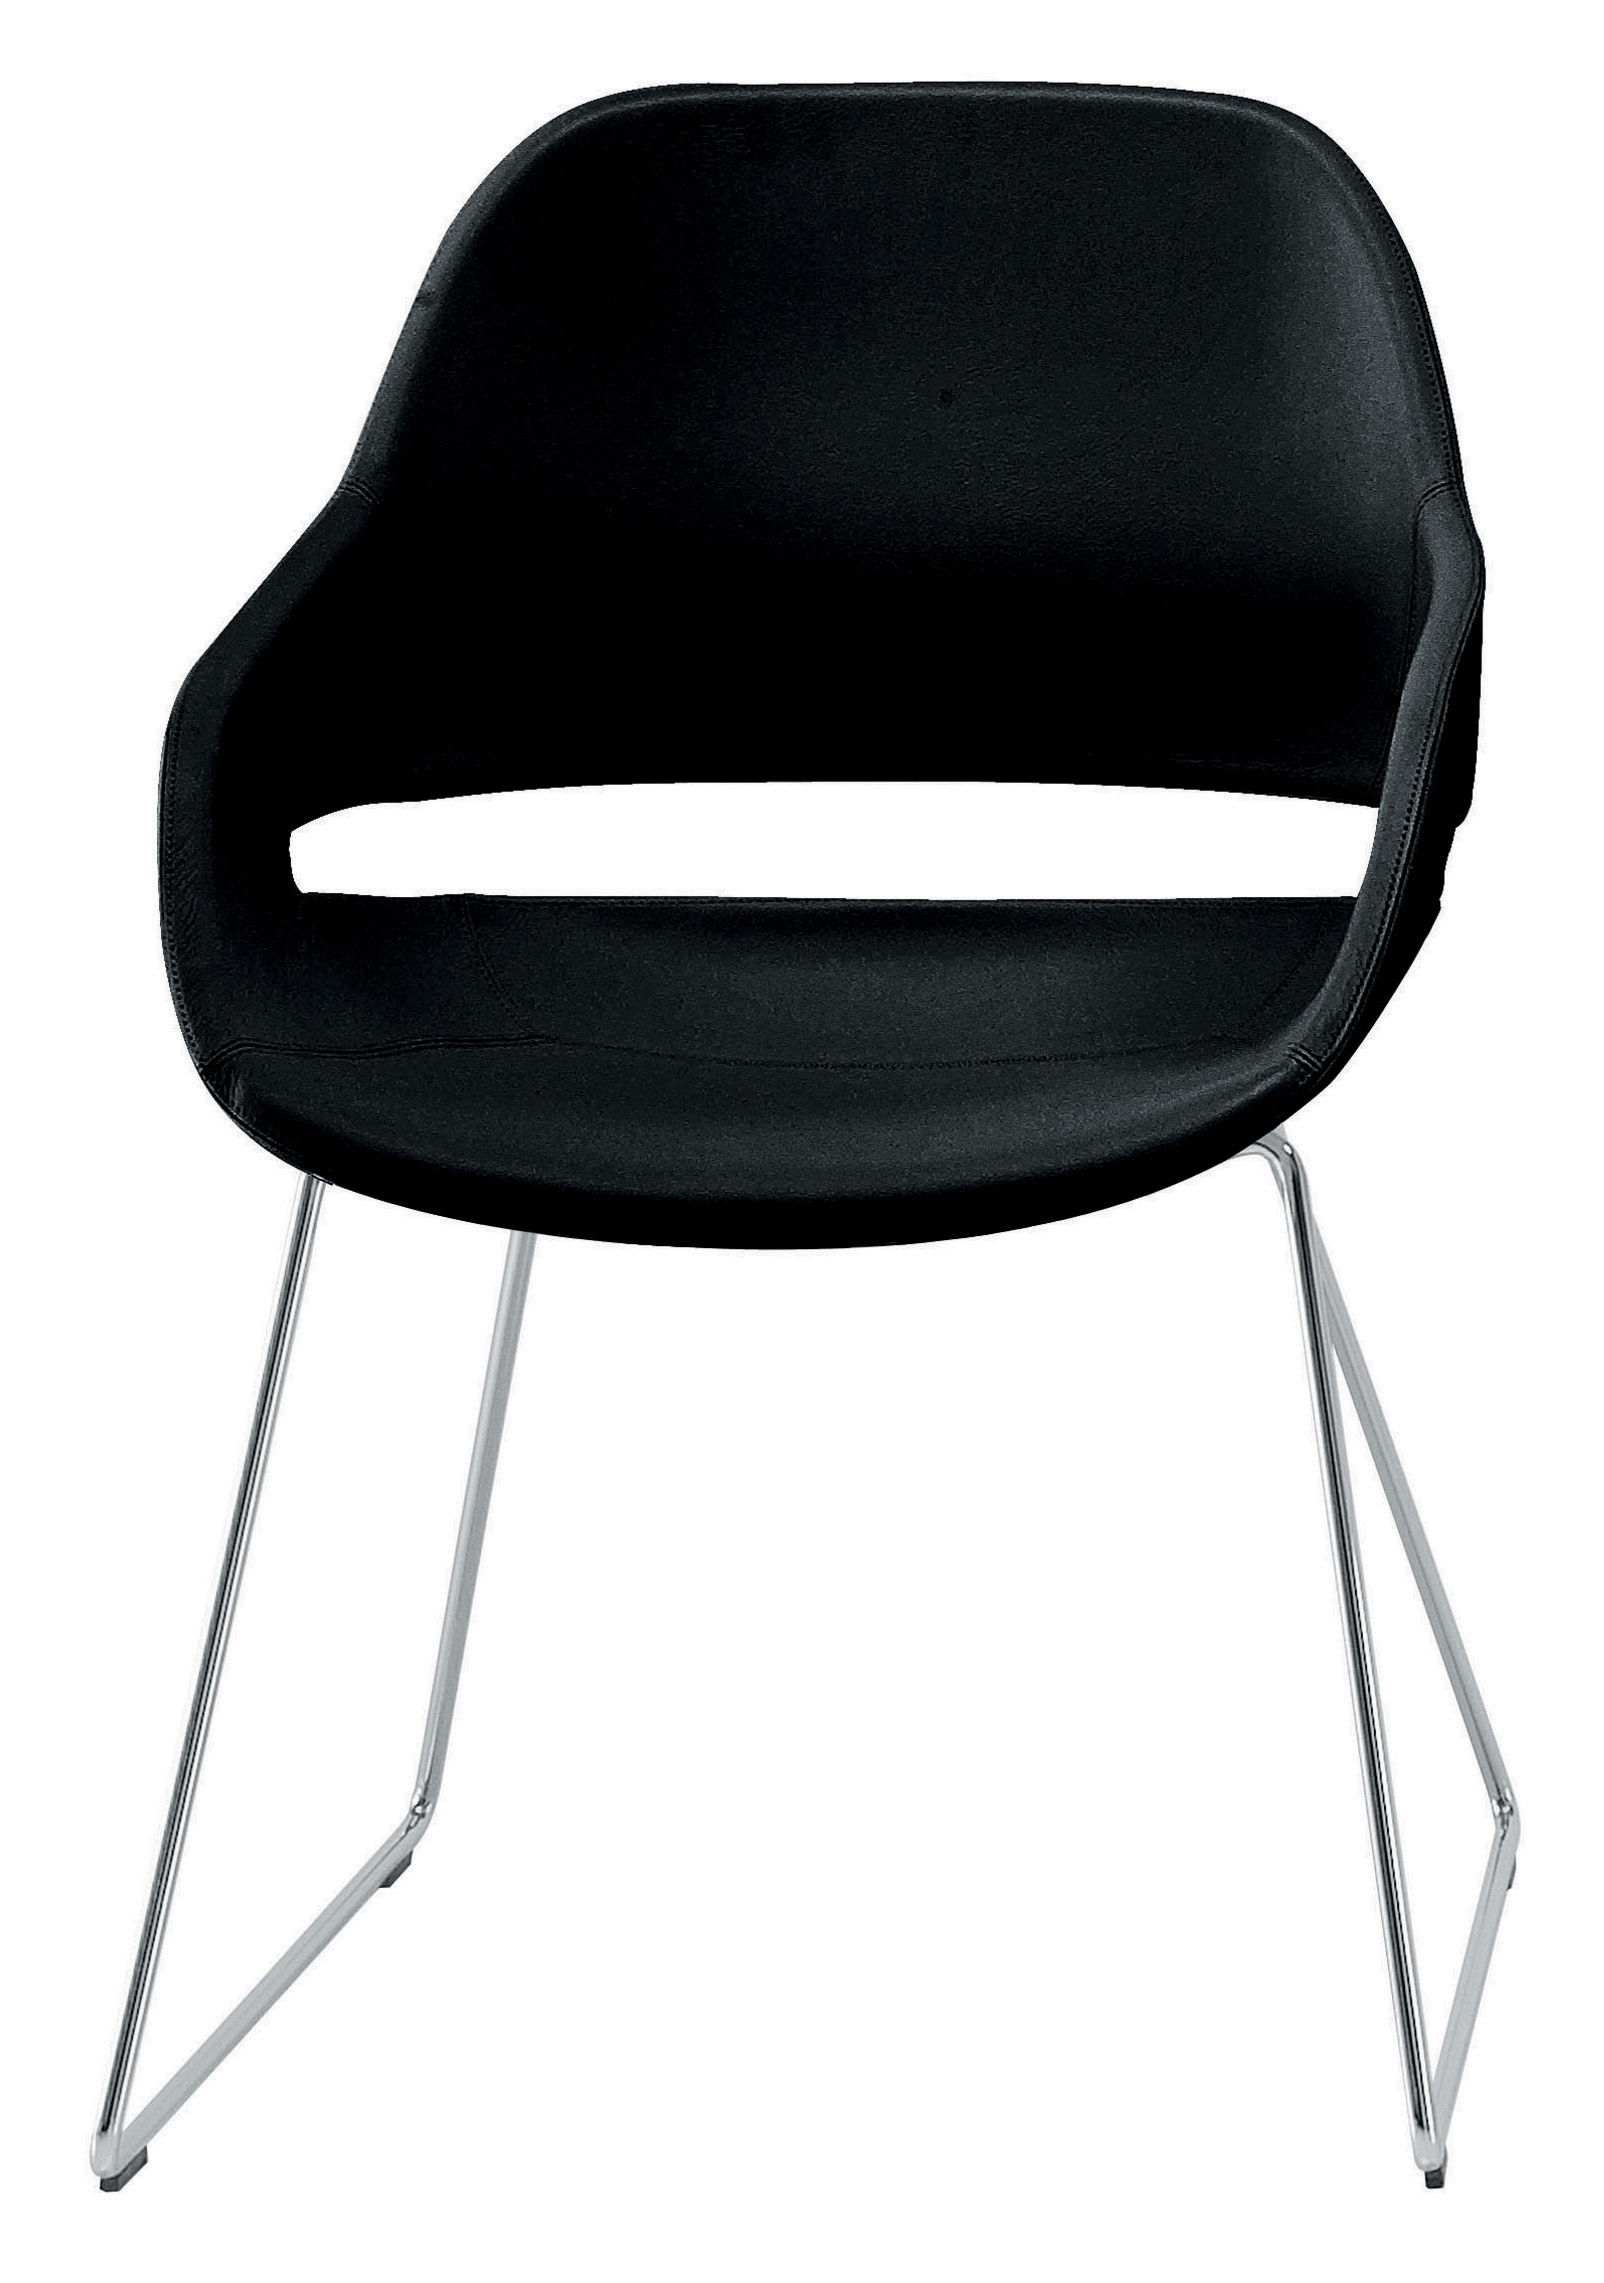 Furniture - Chairs - Eva Armchair - Polyurethan & metal leg by Zanotta - Black shell - Chromed steel feet - Chromed steel, Polyurethane